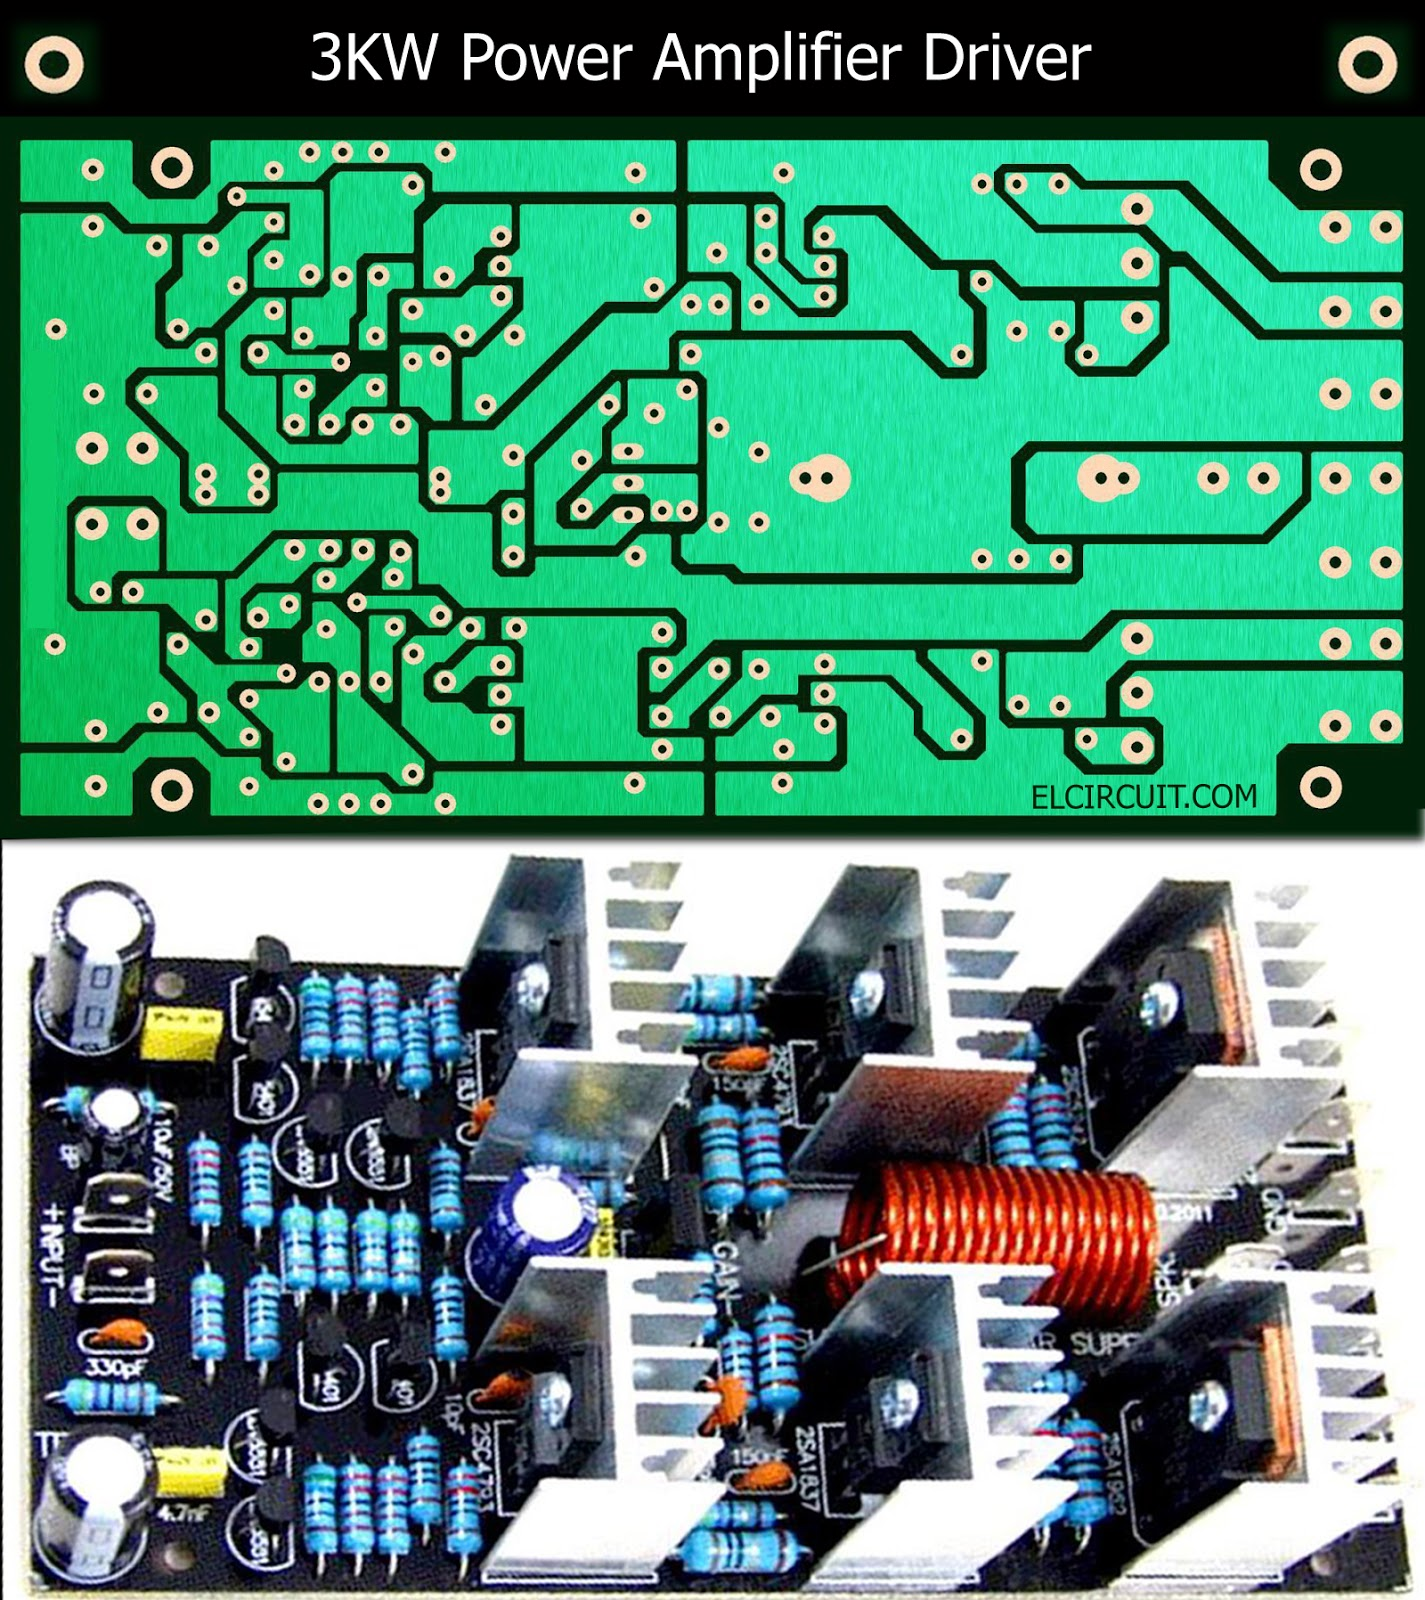 3kW Power Amplifier Driver Circuit PCB Layout - Electronic Circuit